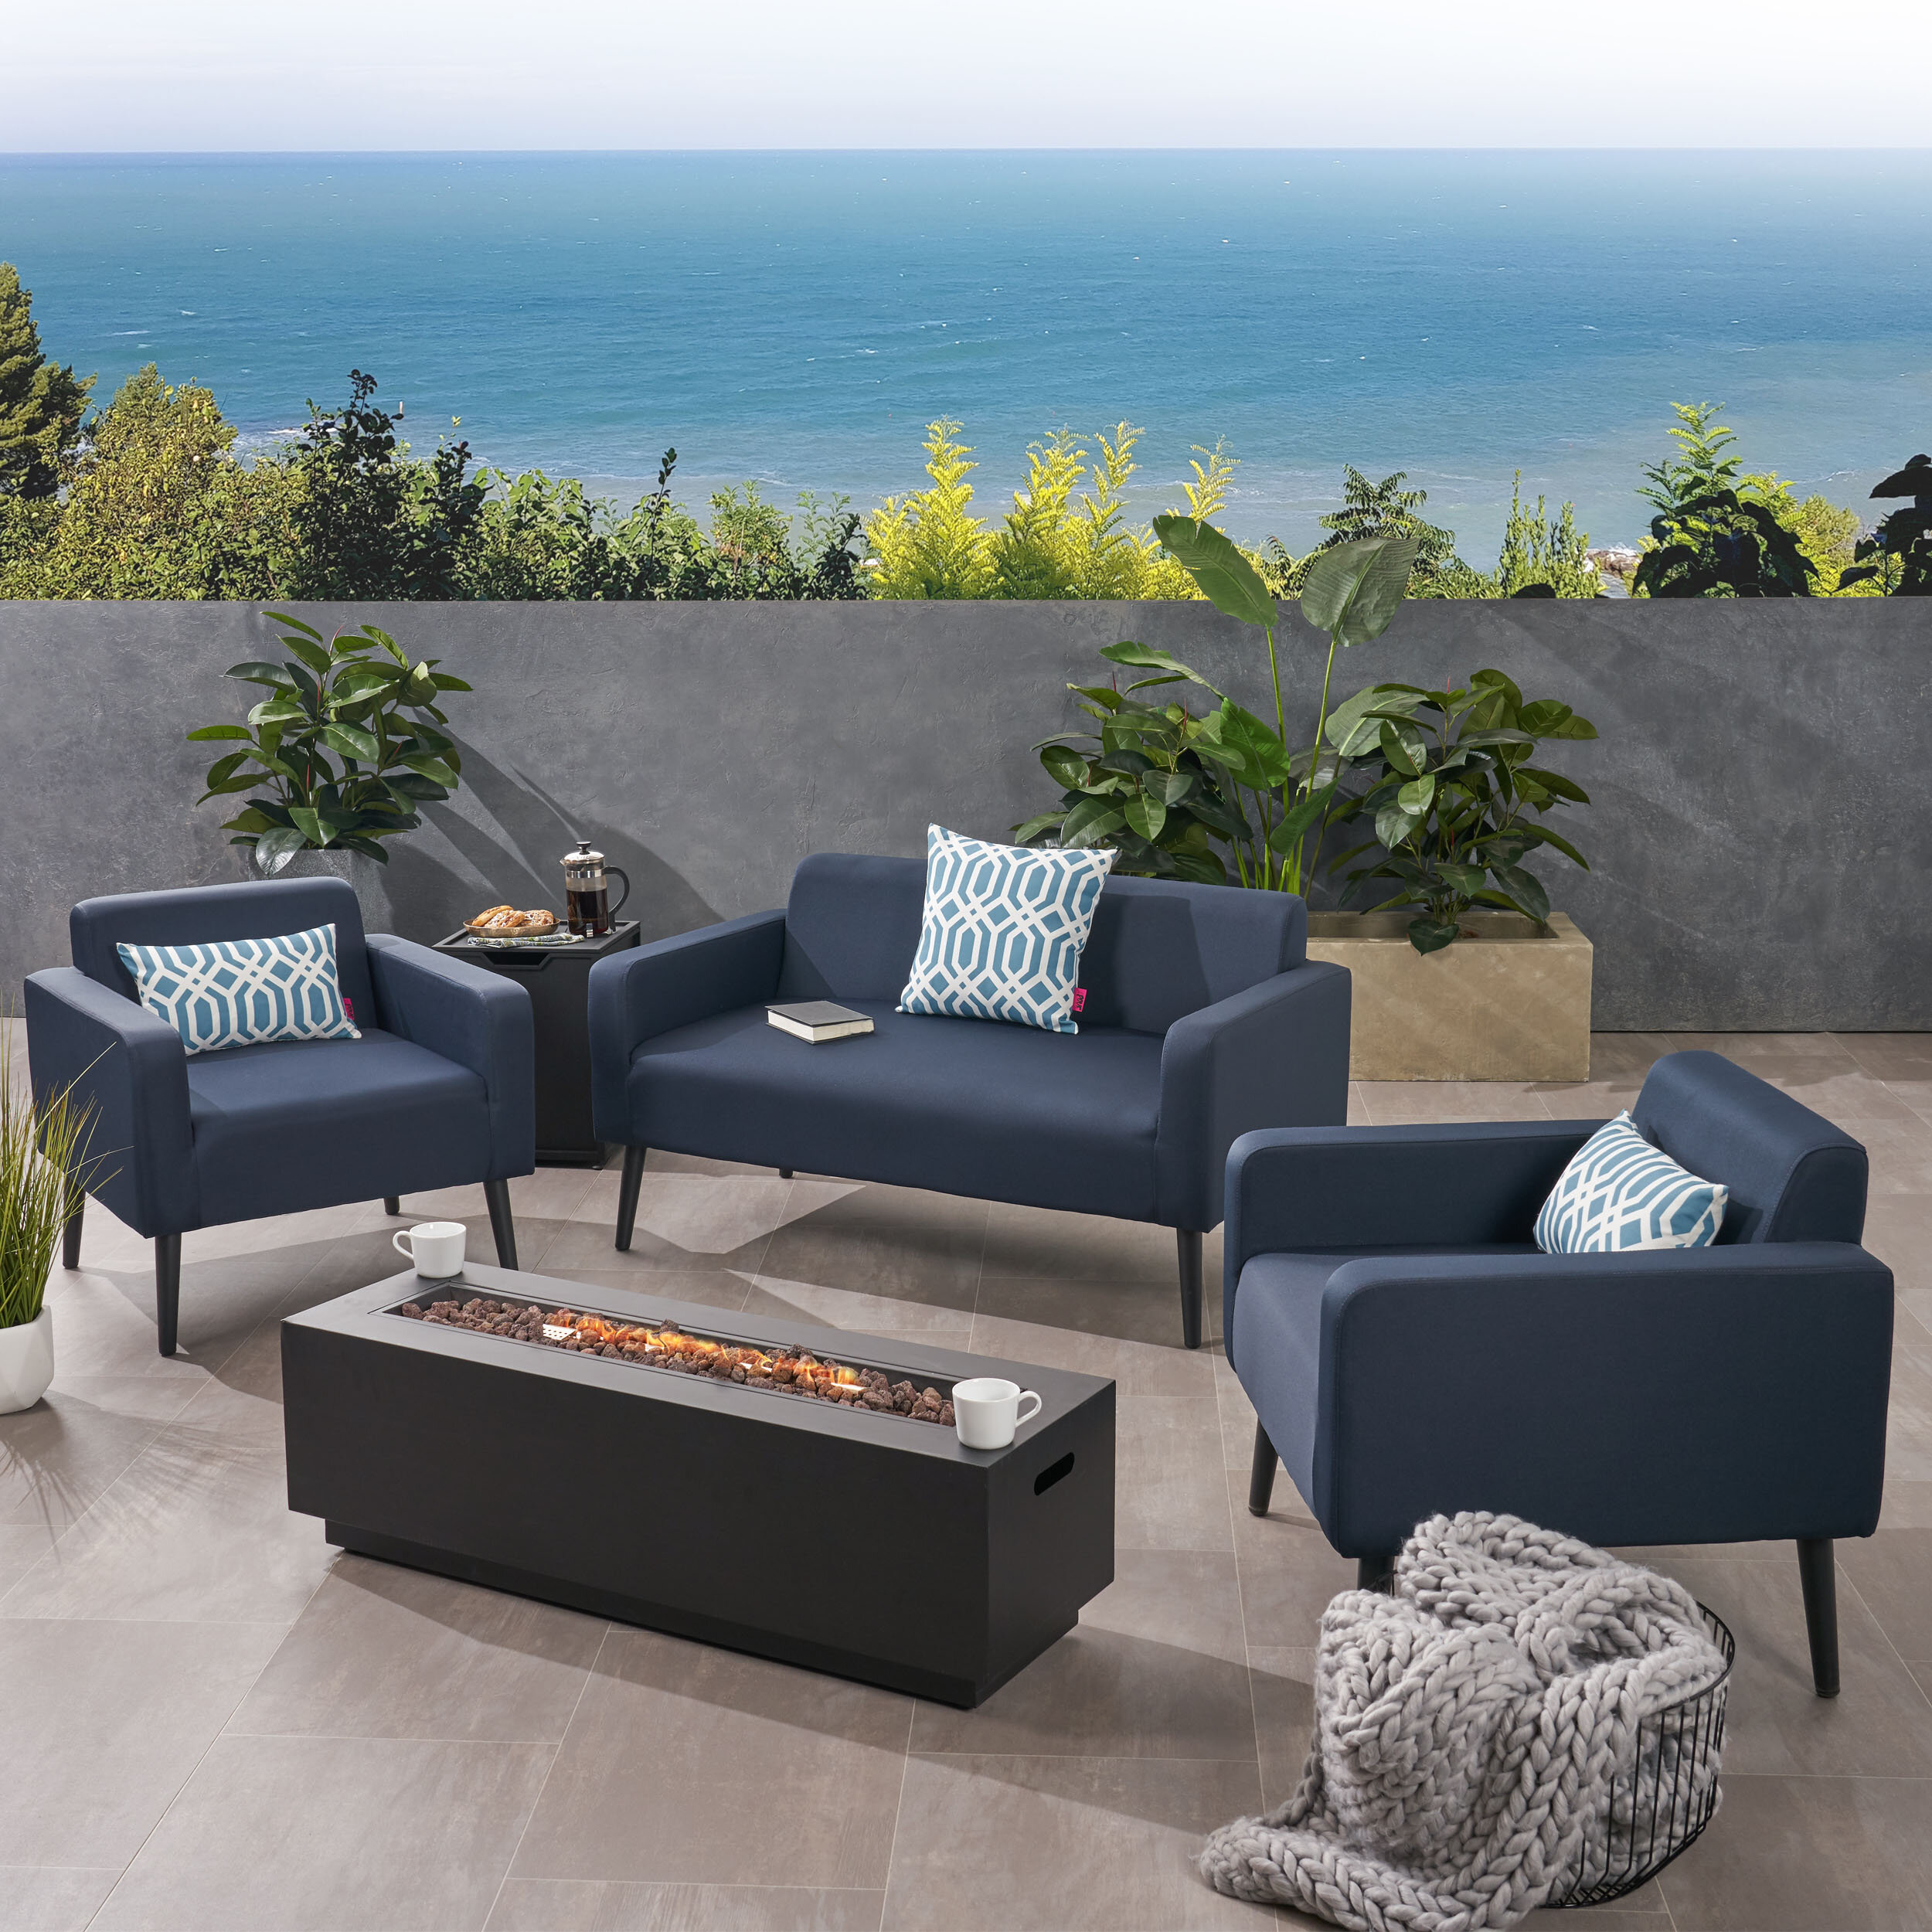 Miraculous Breckenridge Outdoor 5 Piece Sofa Seating Group With Cushions Gmtry Best Dining Table And Chair Ideas Images Gmtryco